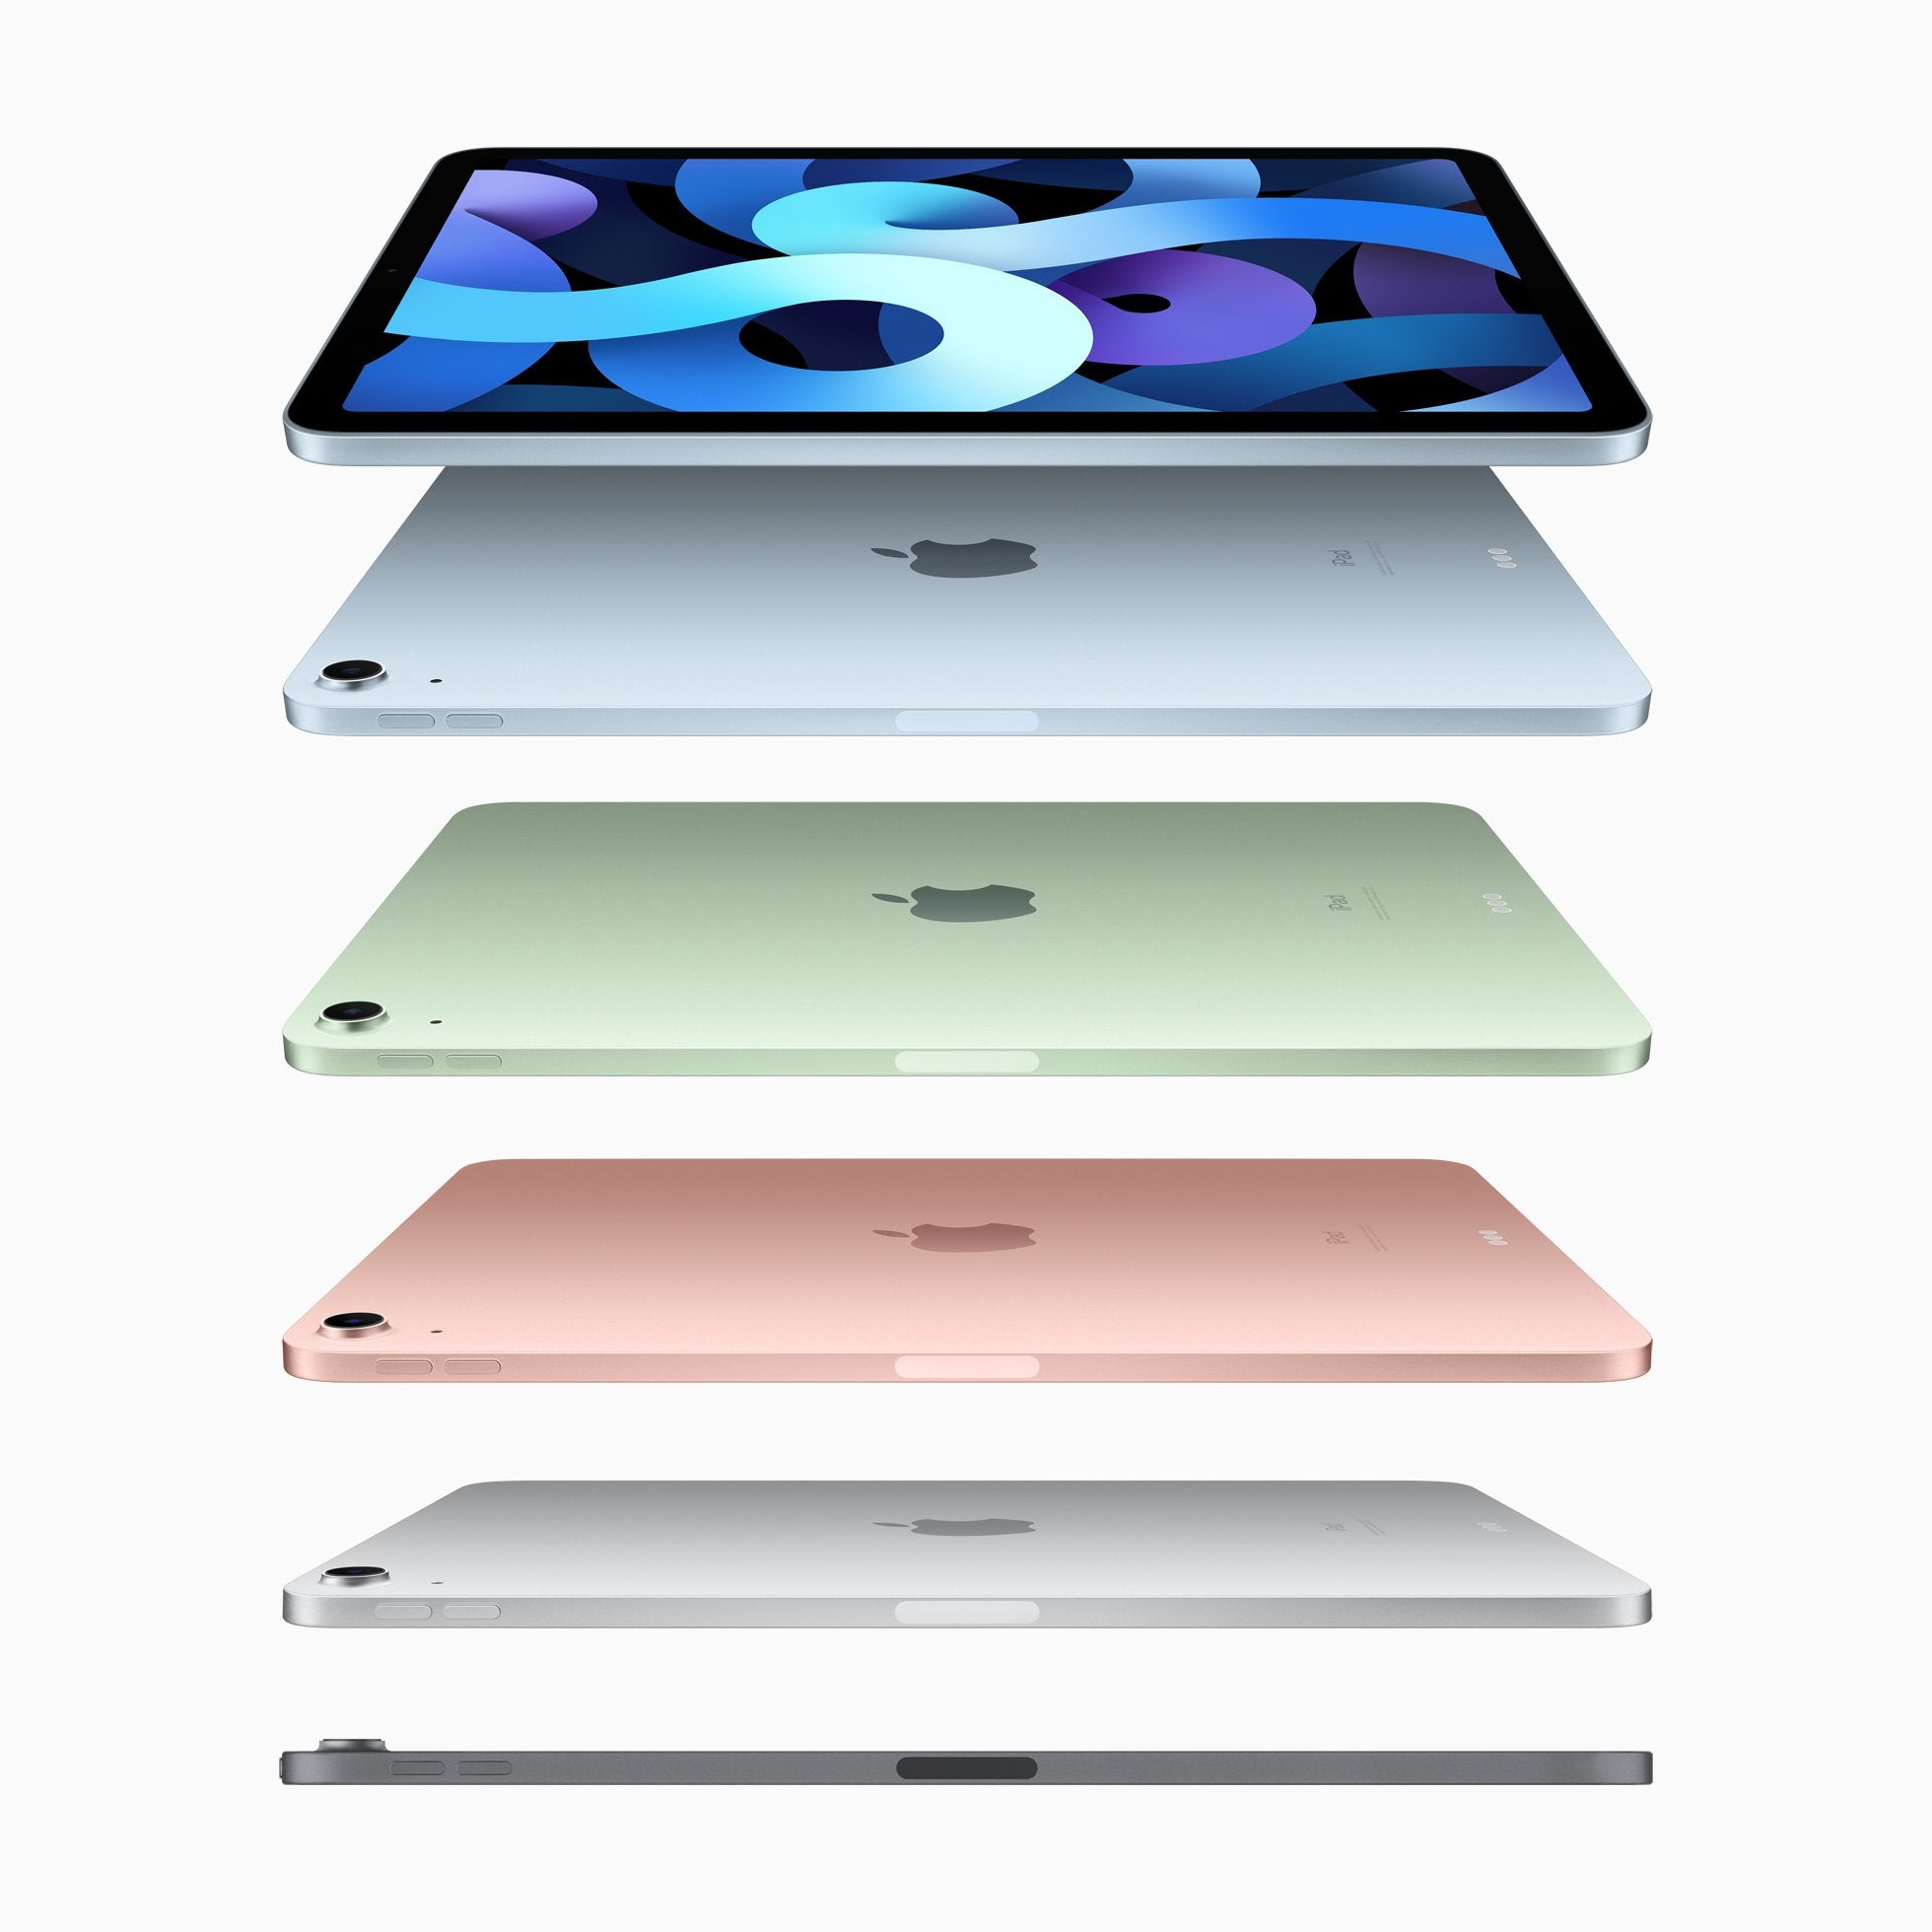 iPad Air 2020 (10.9-inch, Wi-Fi, 64GB) -Latest Model - iStock BD